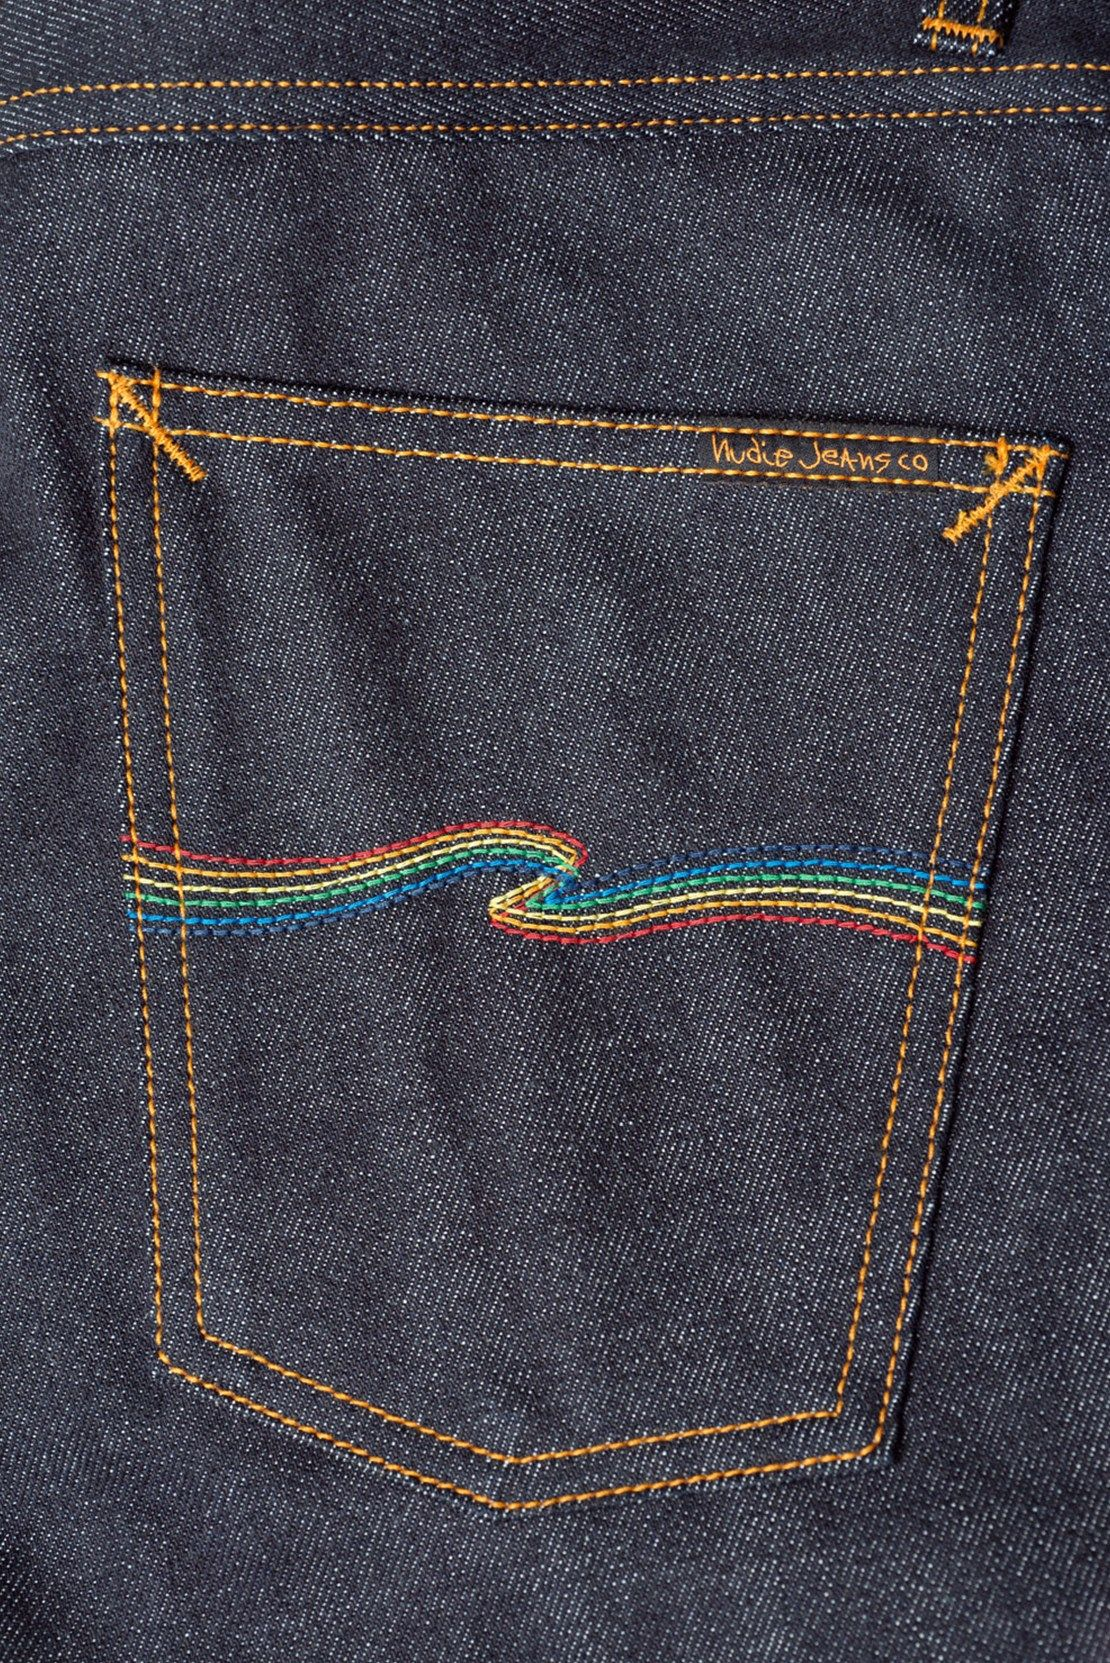 Discussion on this topic: Nudie Jeans Co x Oi Polloi Grim , nudie-jeans-co-x-oi-polloi-grim/